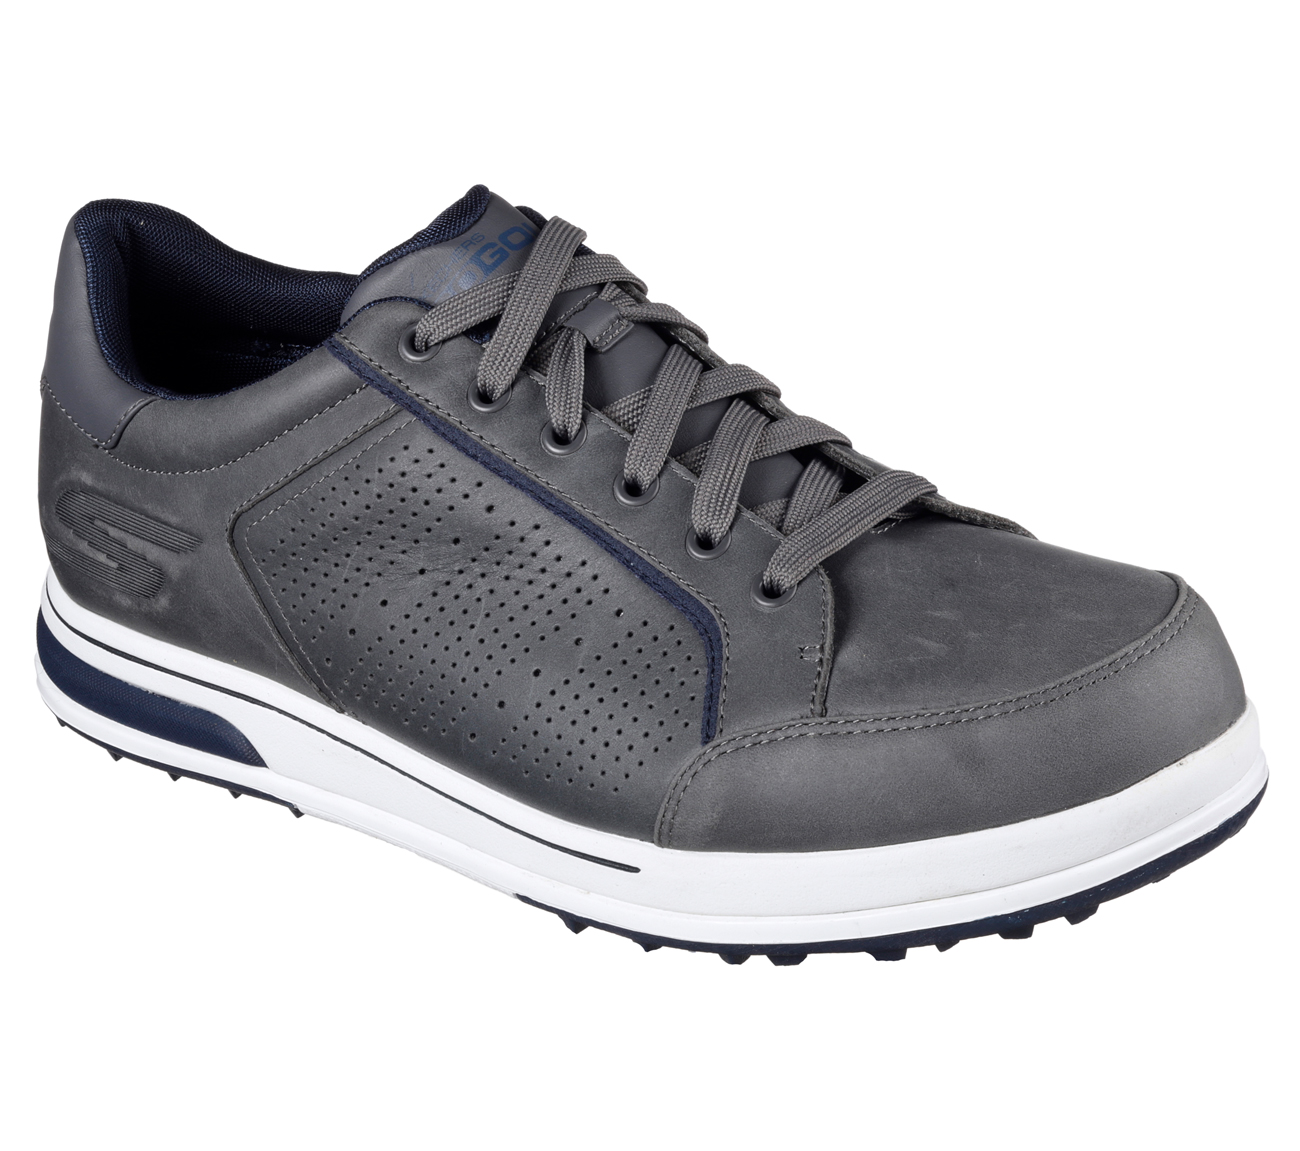 Buy Skechers Skechers Go Golf Drive 2 Lx Skechers